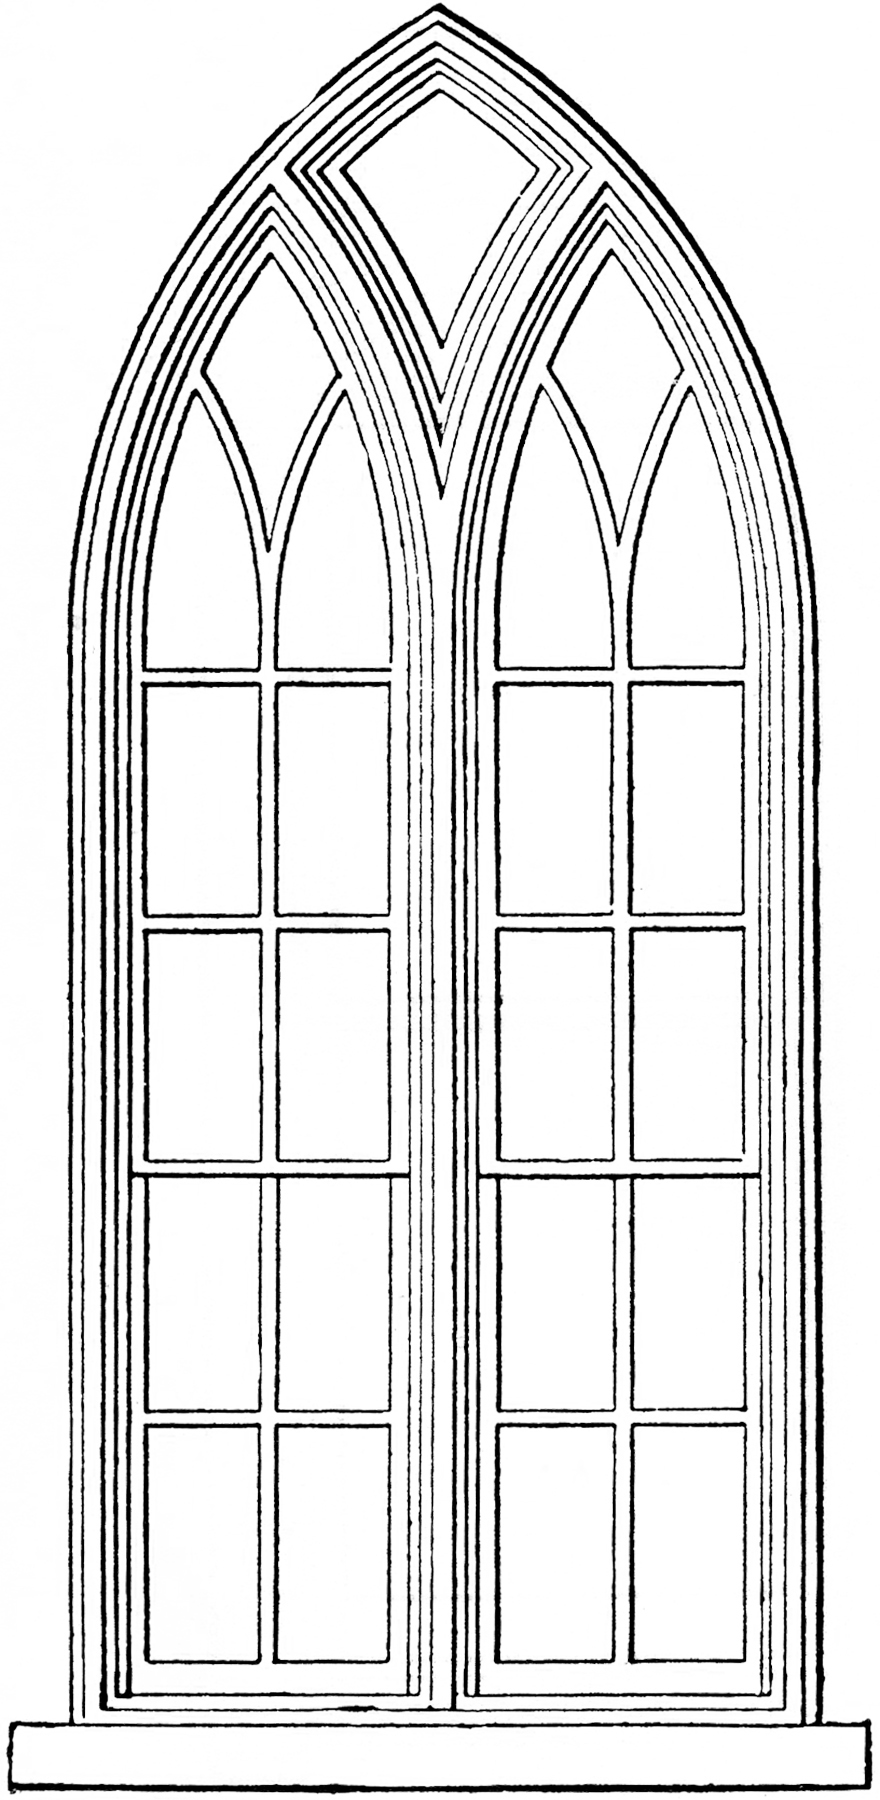 Arched window clipart.